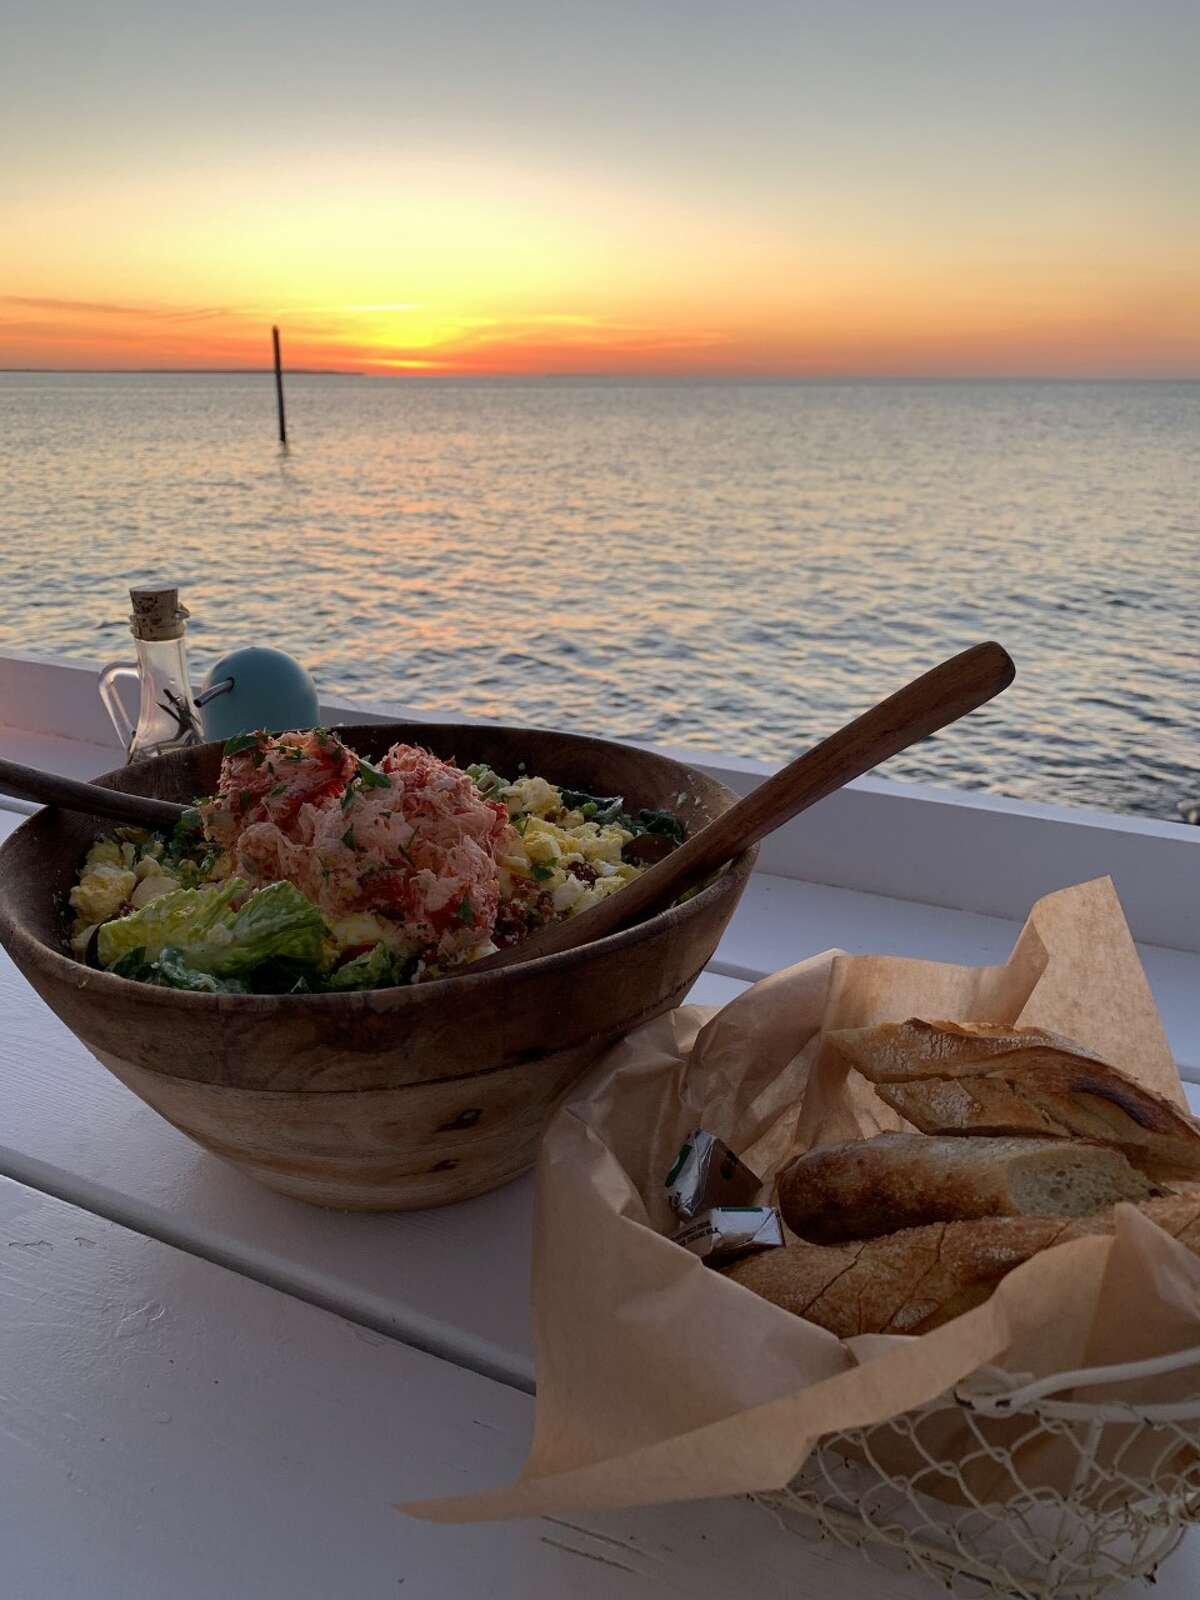 The view at Duryea's in Montauk looks like a postcard. If you time it right, you can head there for dinner and catch the sunset over the water.